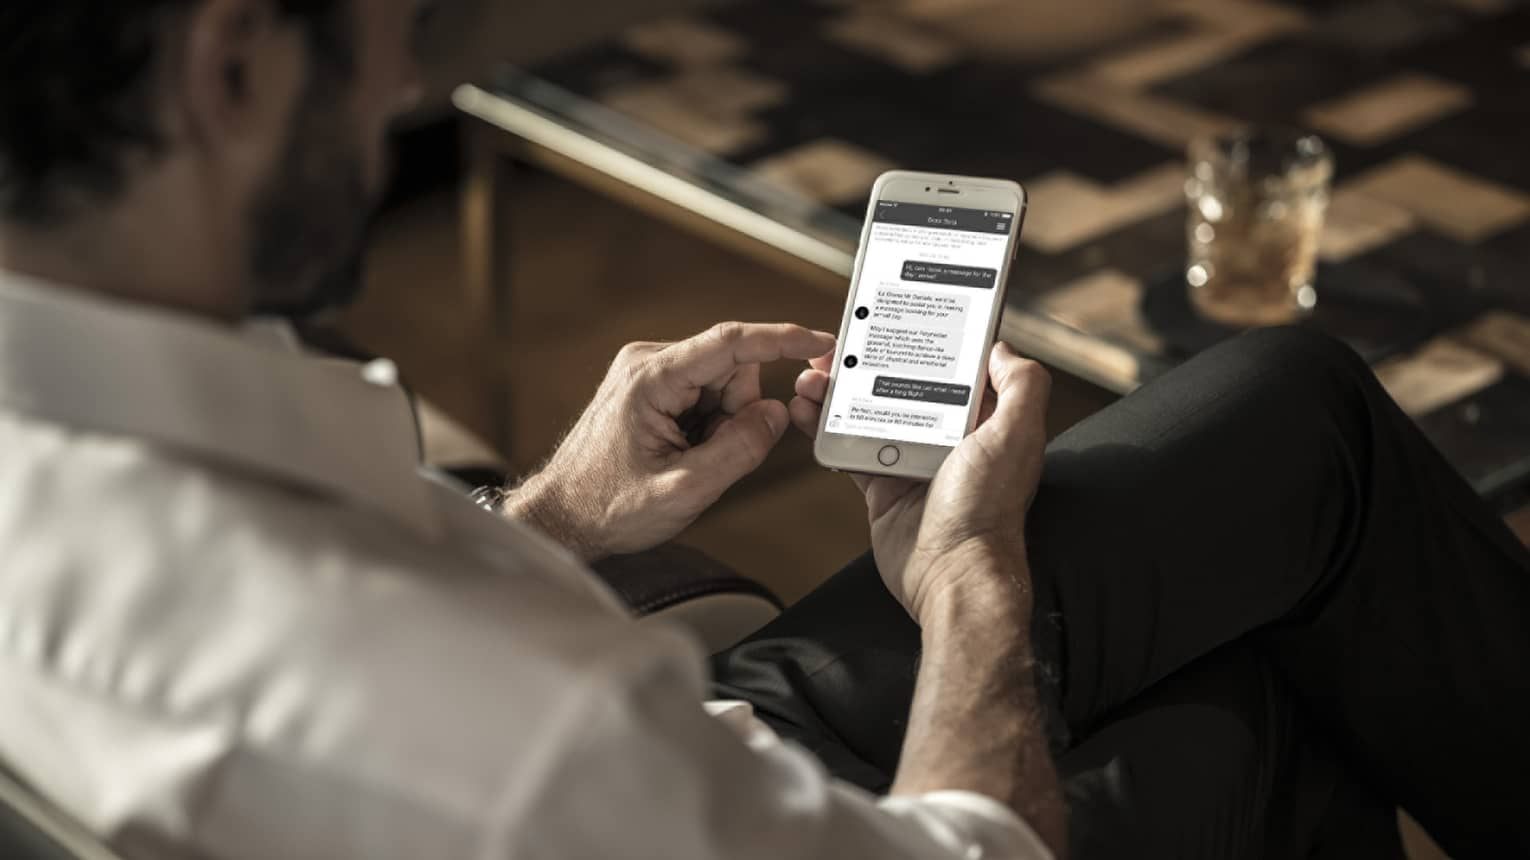 Man wearing suit looks down at text messages from spa on smart phone in lounge